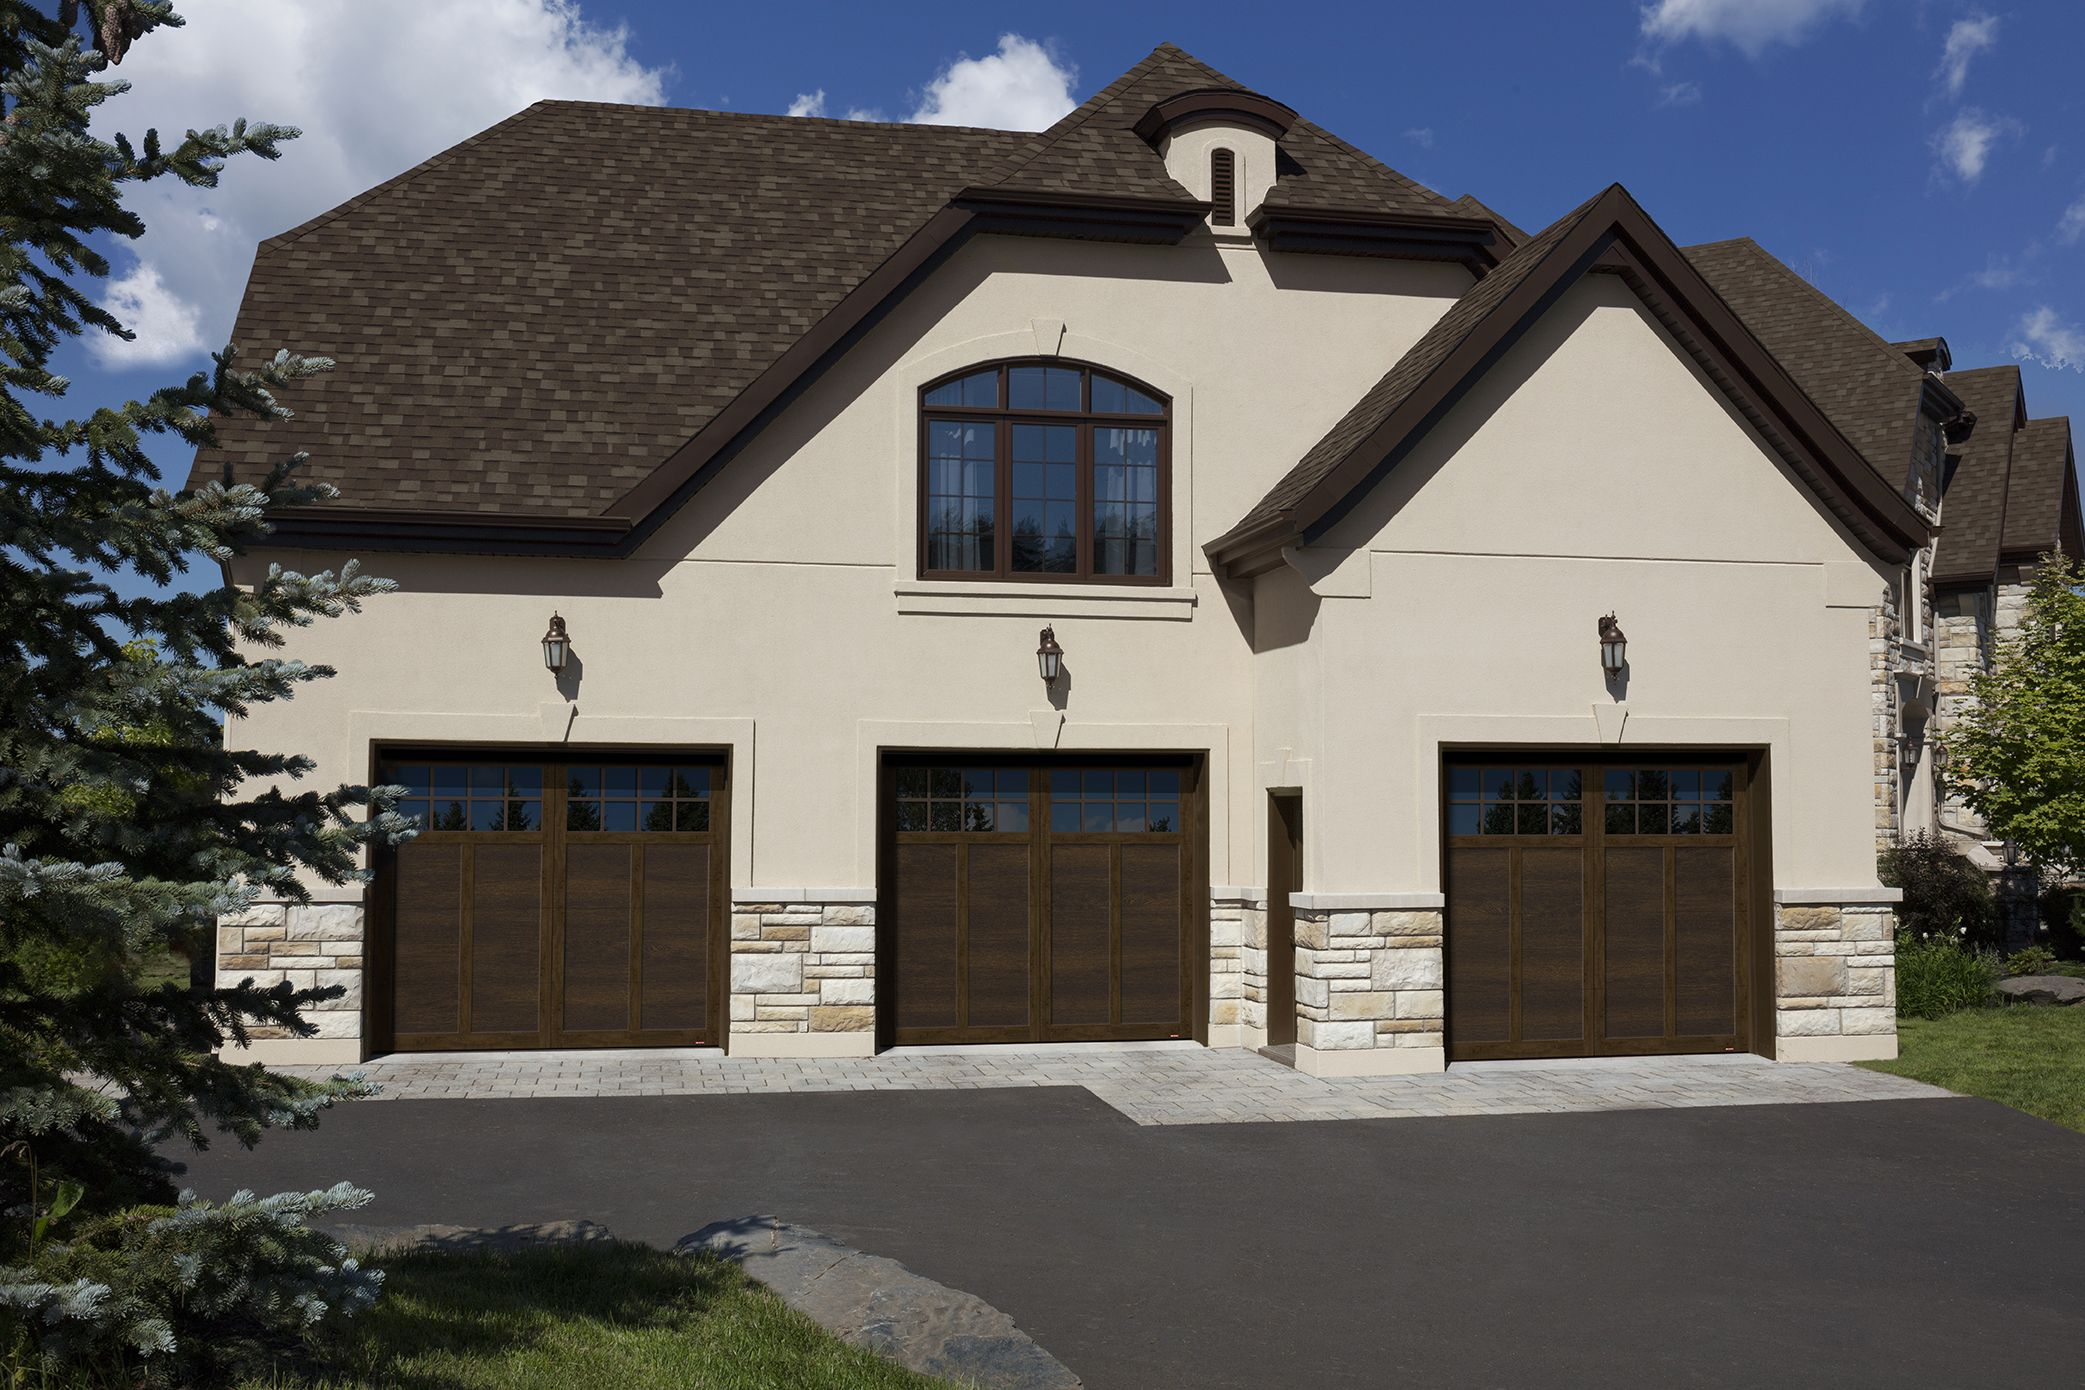 Princeton P 12 9 X 8 Chocolate Walnut Doors And Overlays 8 Lite Panoramic Windows Walnut Doors House Styles